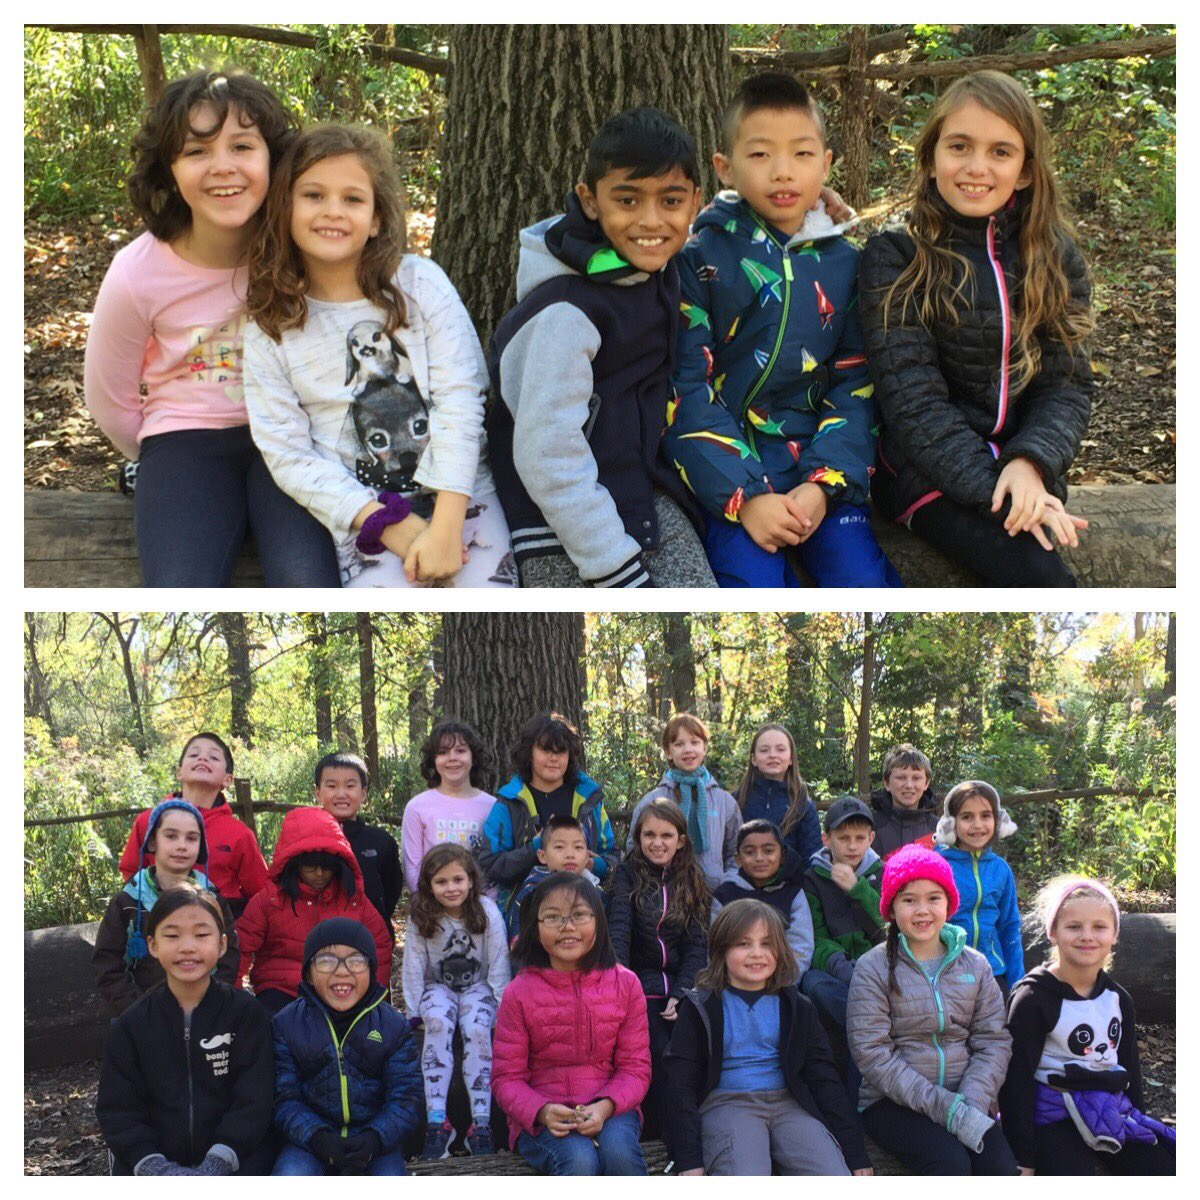 test Twitter Media - We had a memorable day on our field trip at The Grove! #d30learns https://t.co/7pIoHXYwUp